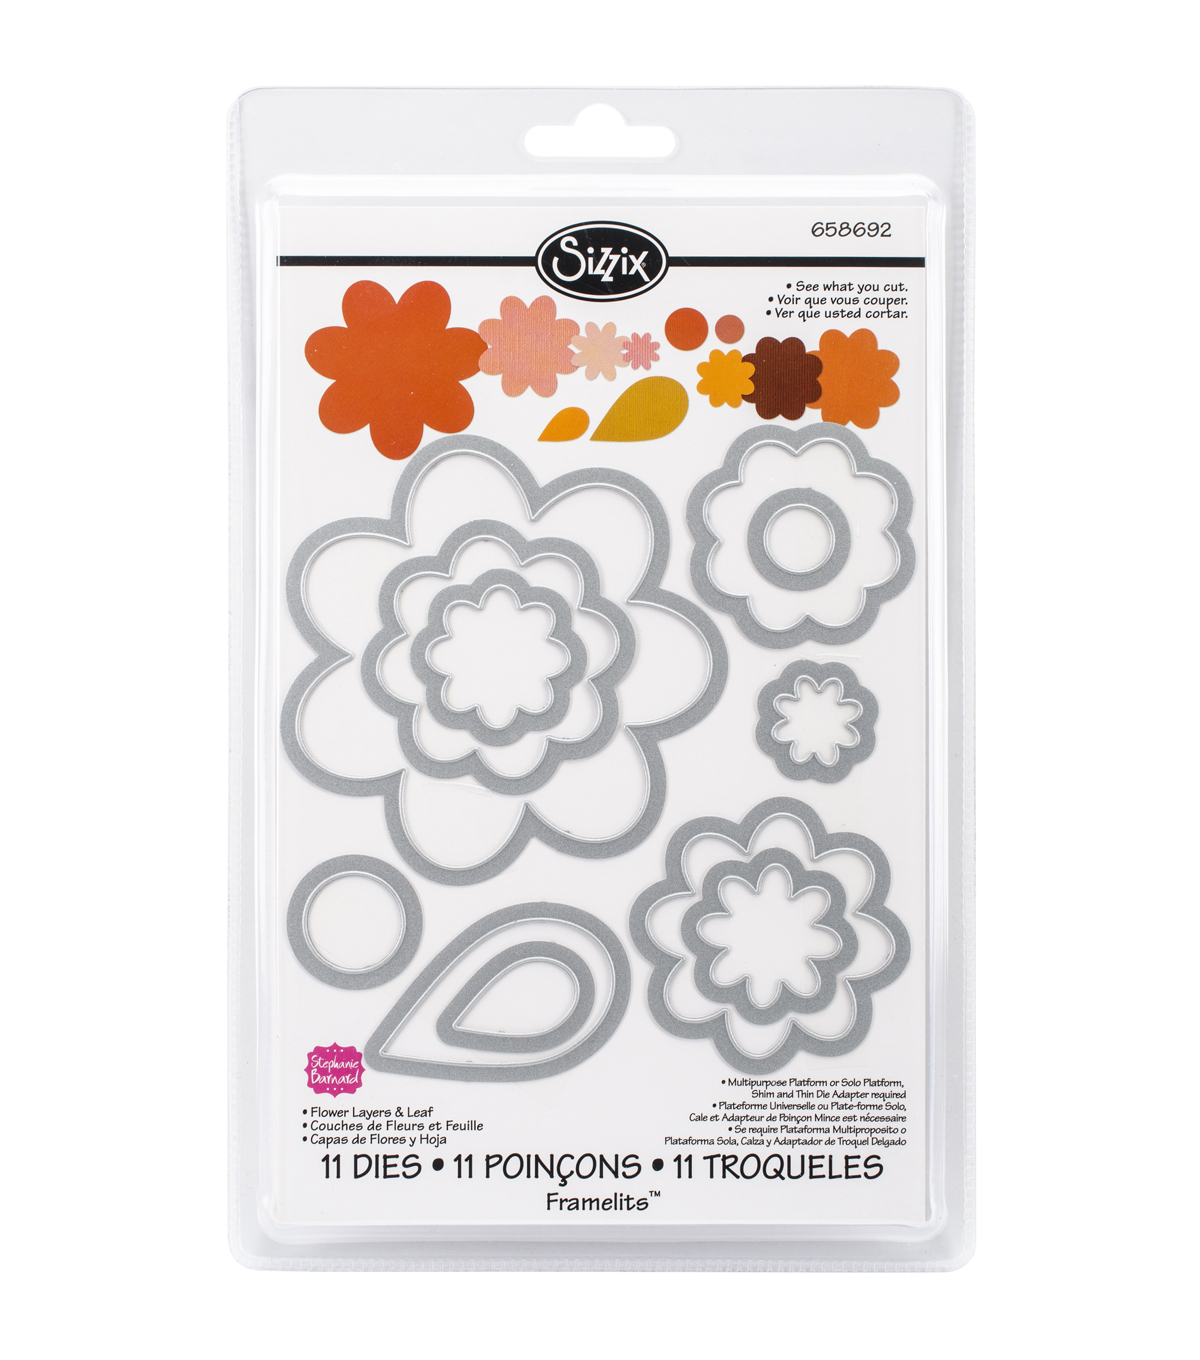 Sizzix Framelits 11 Pack Dies-Flower Layers & Leaf